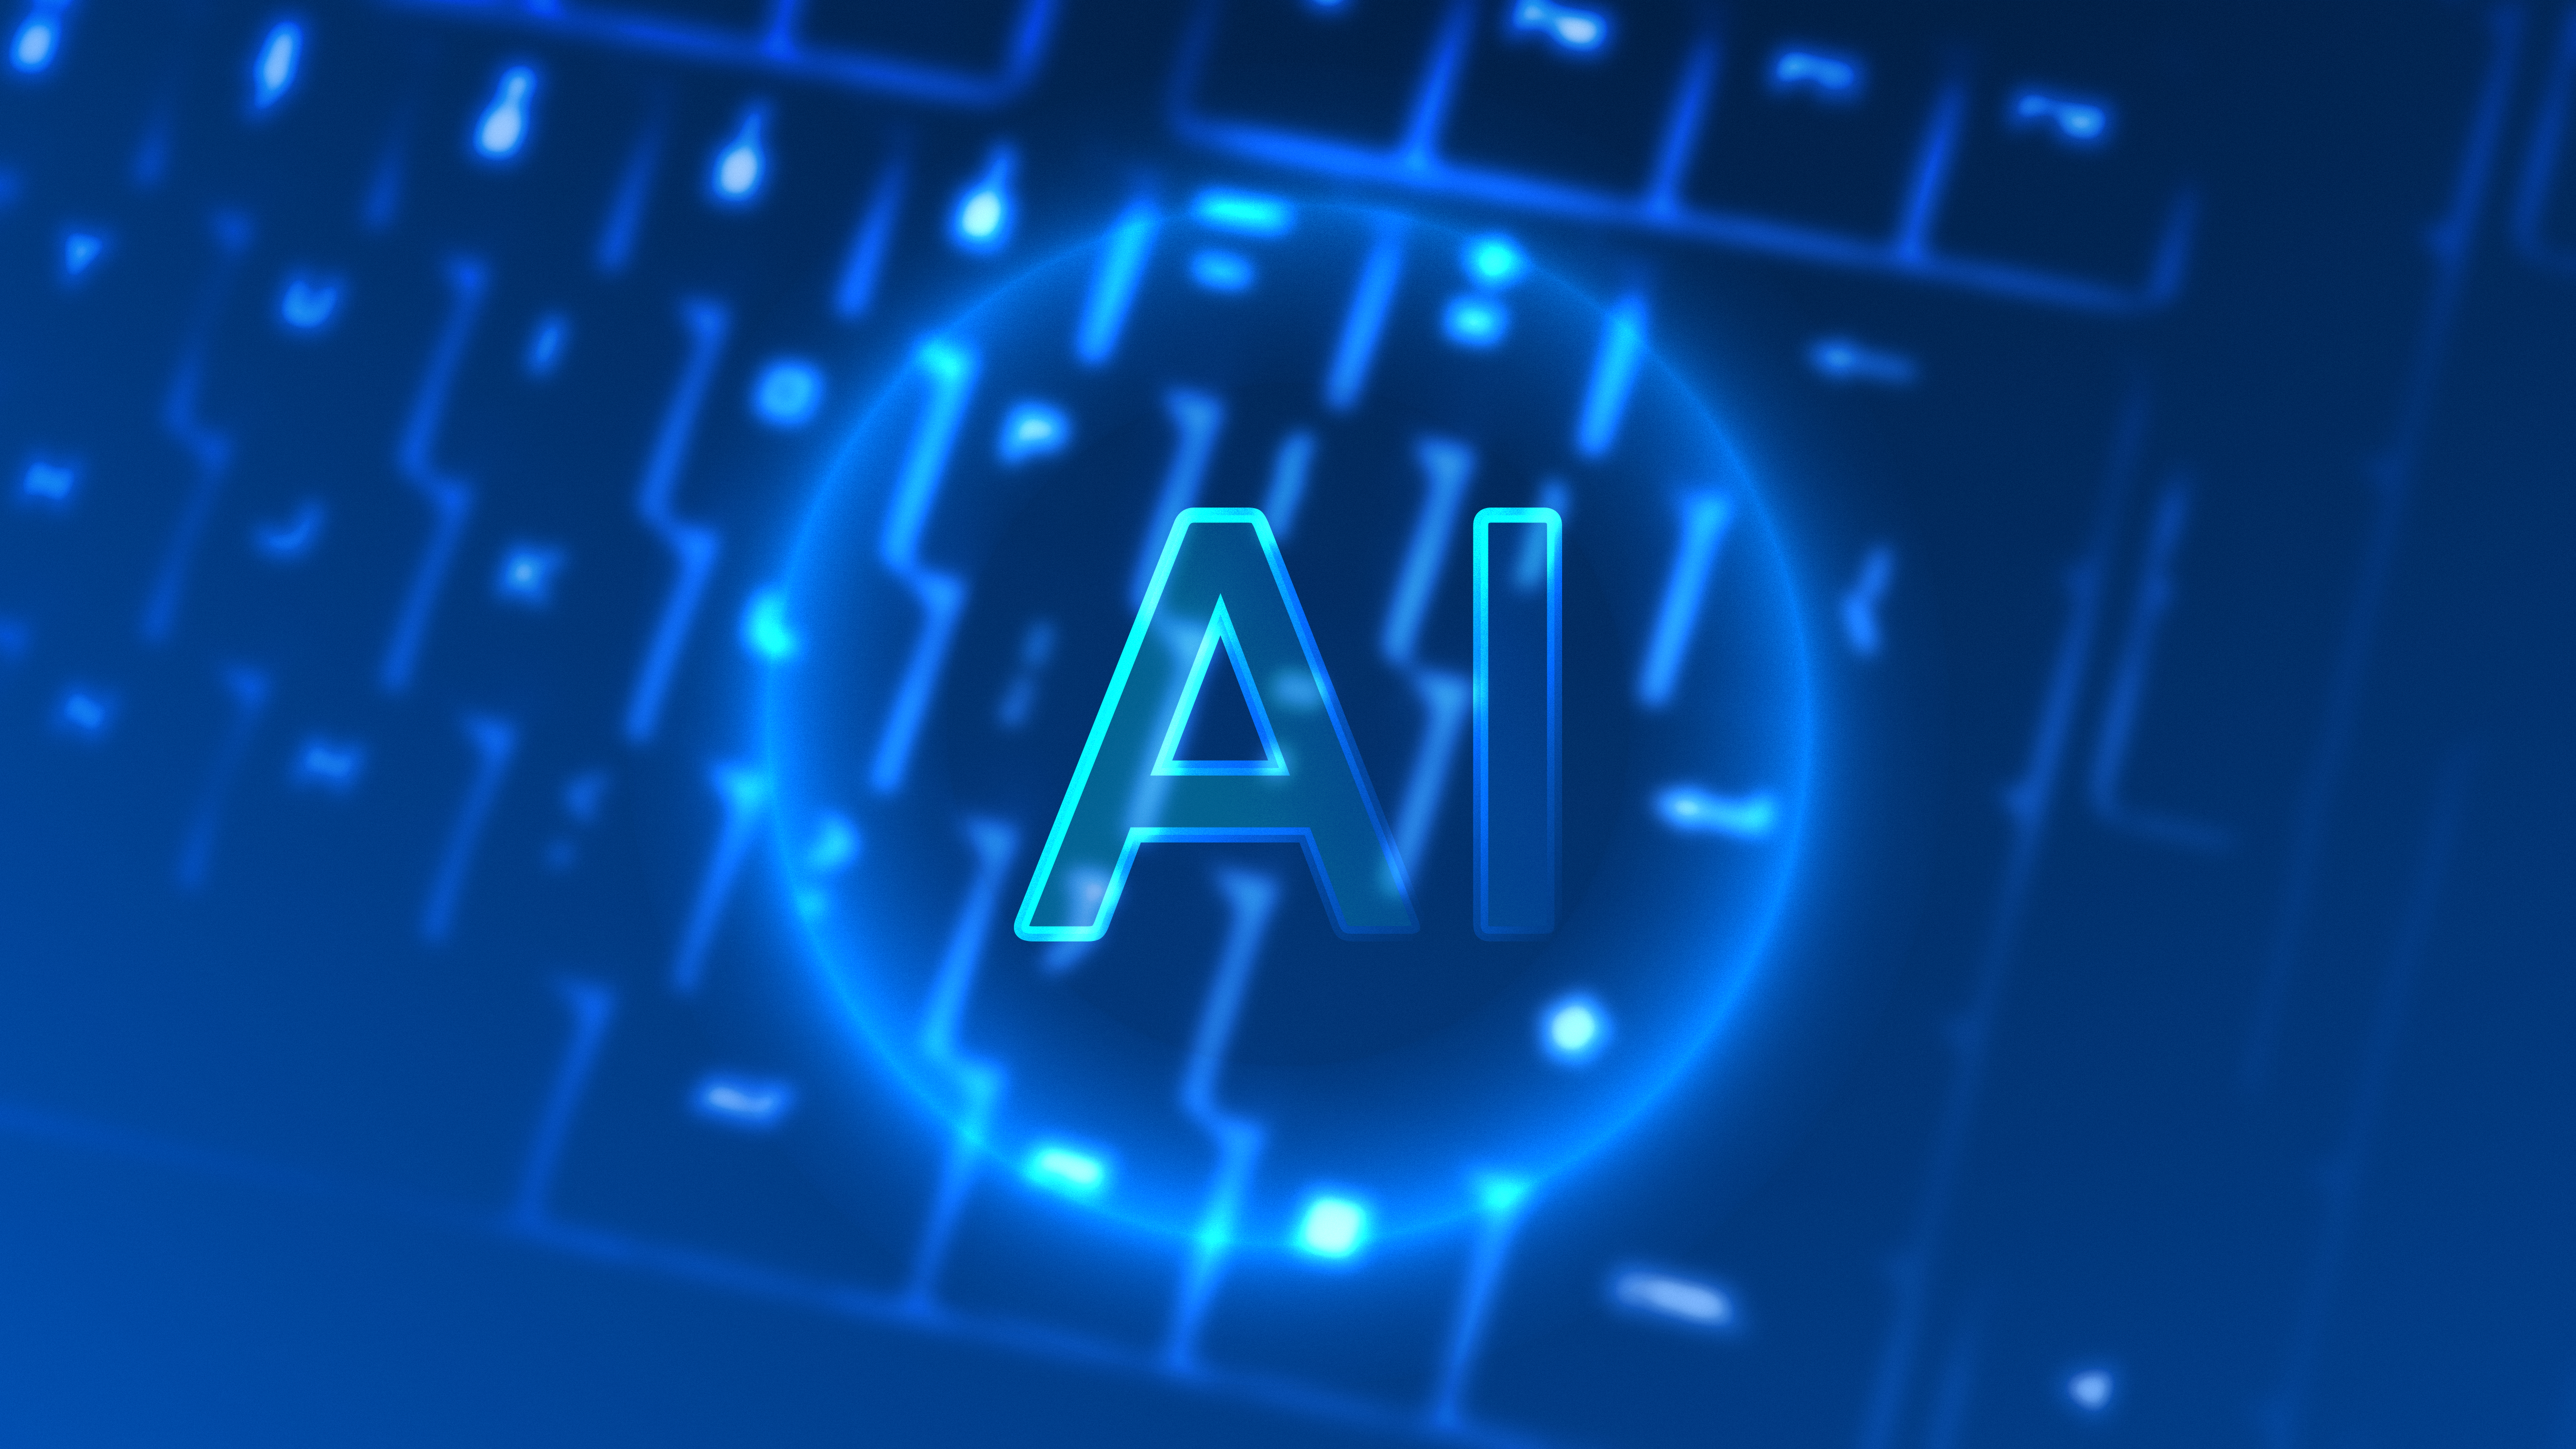 neon-ai-on-a-keyboard-T2T5C45